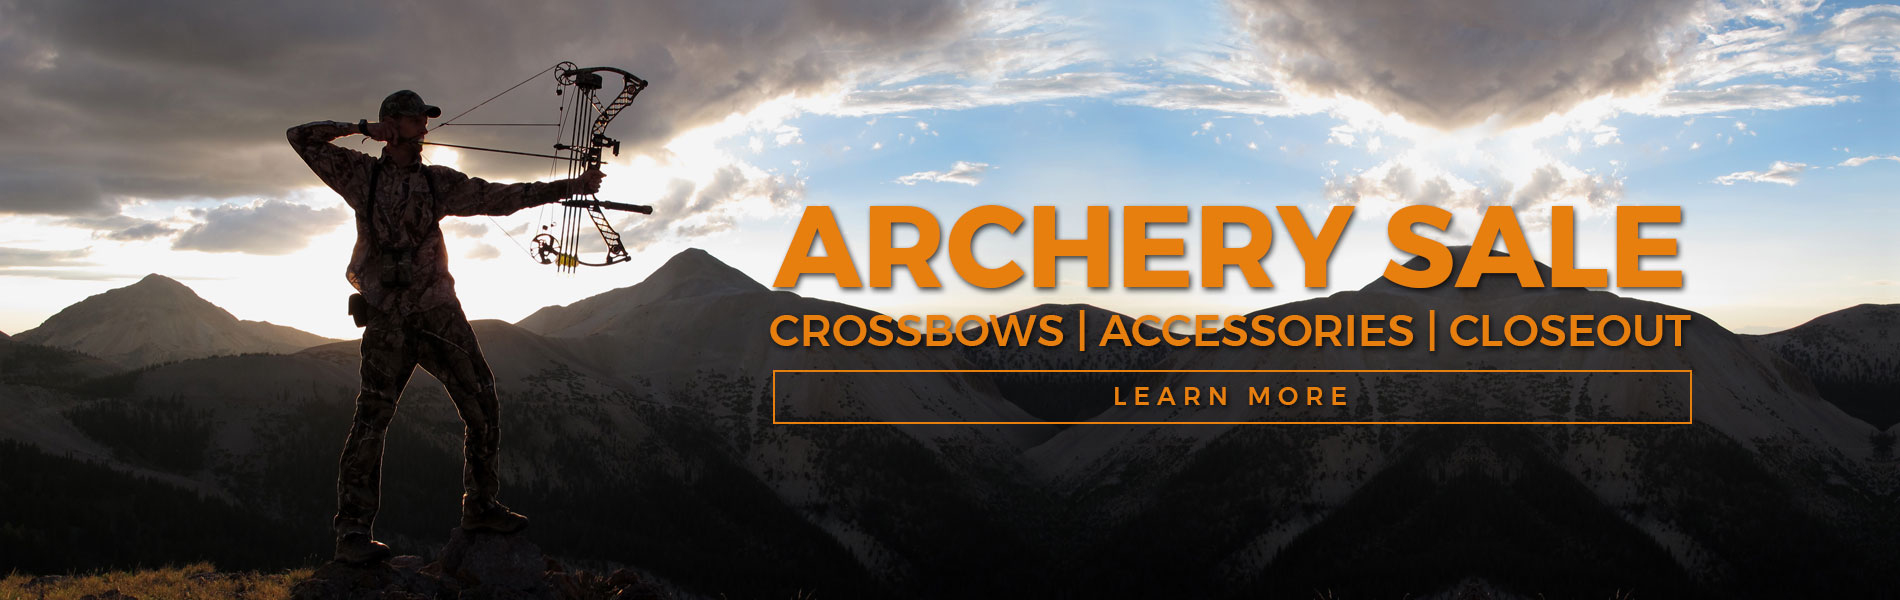 Glaubers_Website-Header_Archery-Sale_Image_0218_01